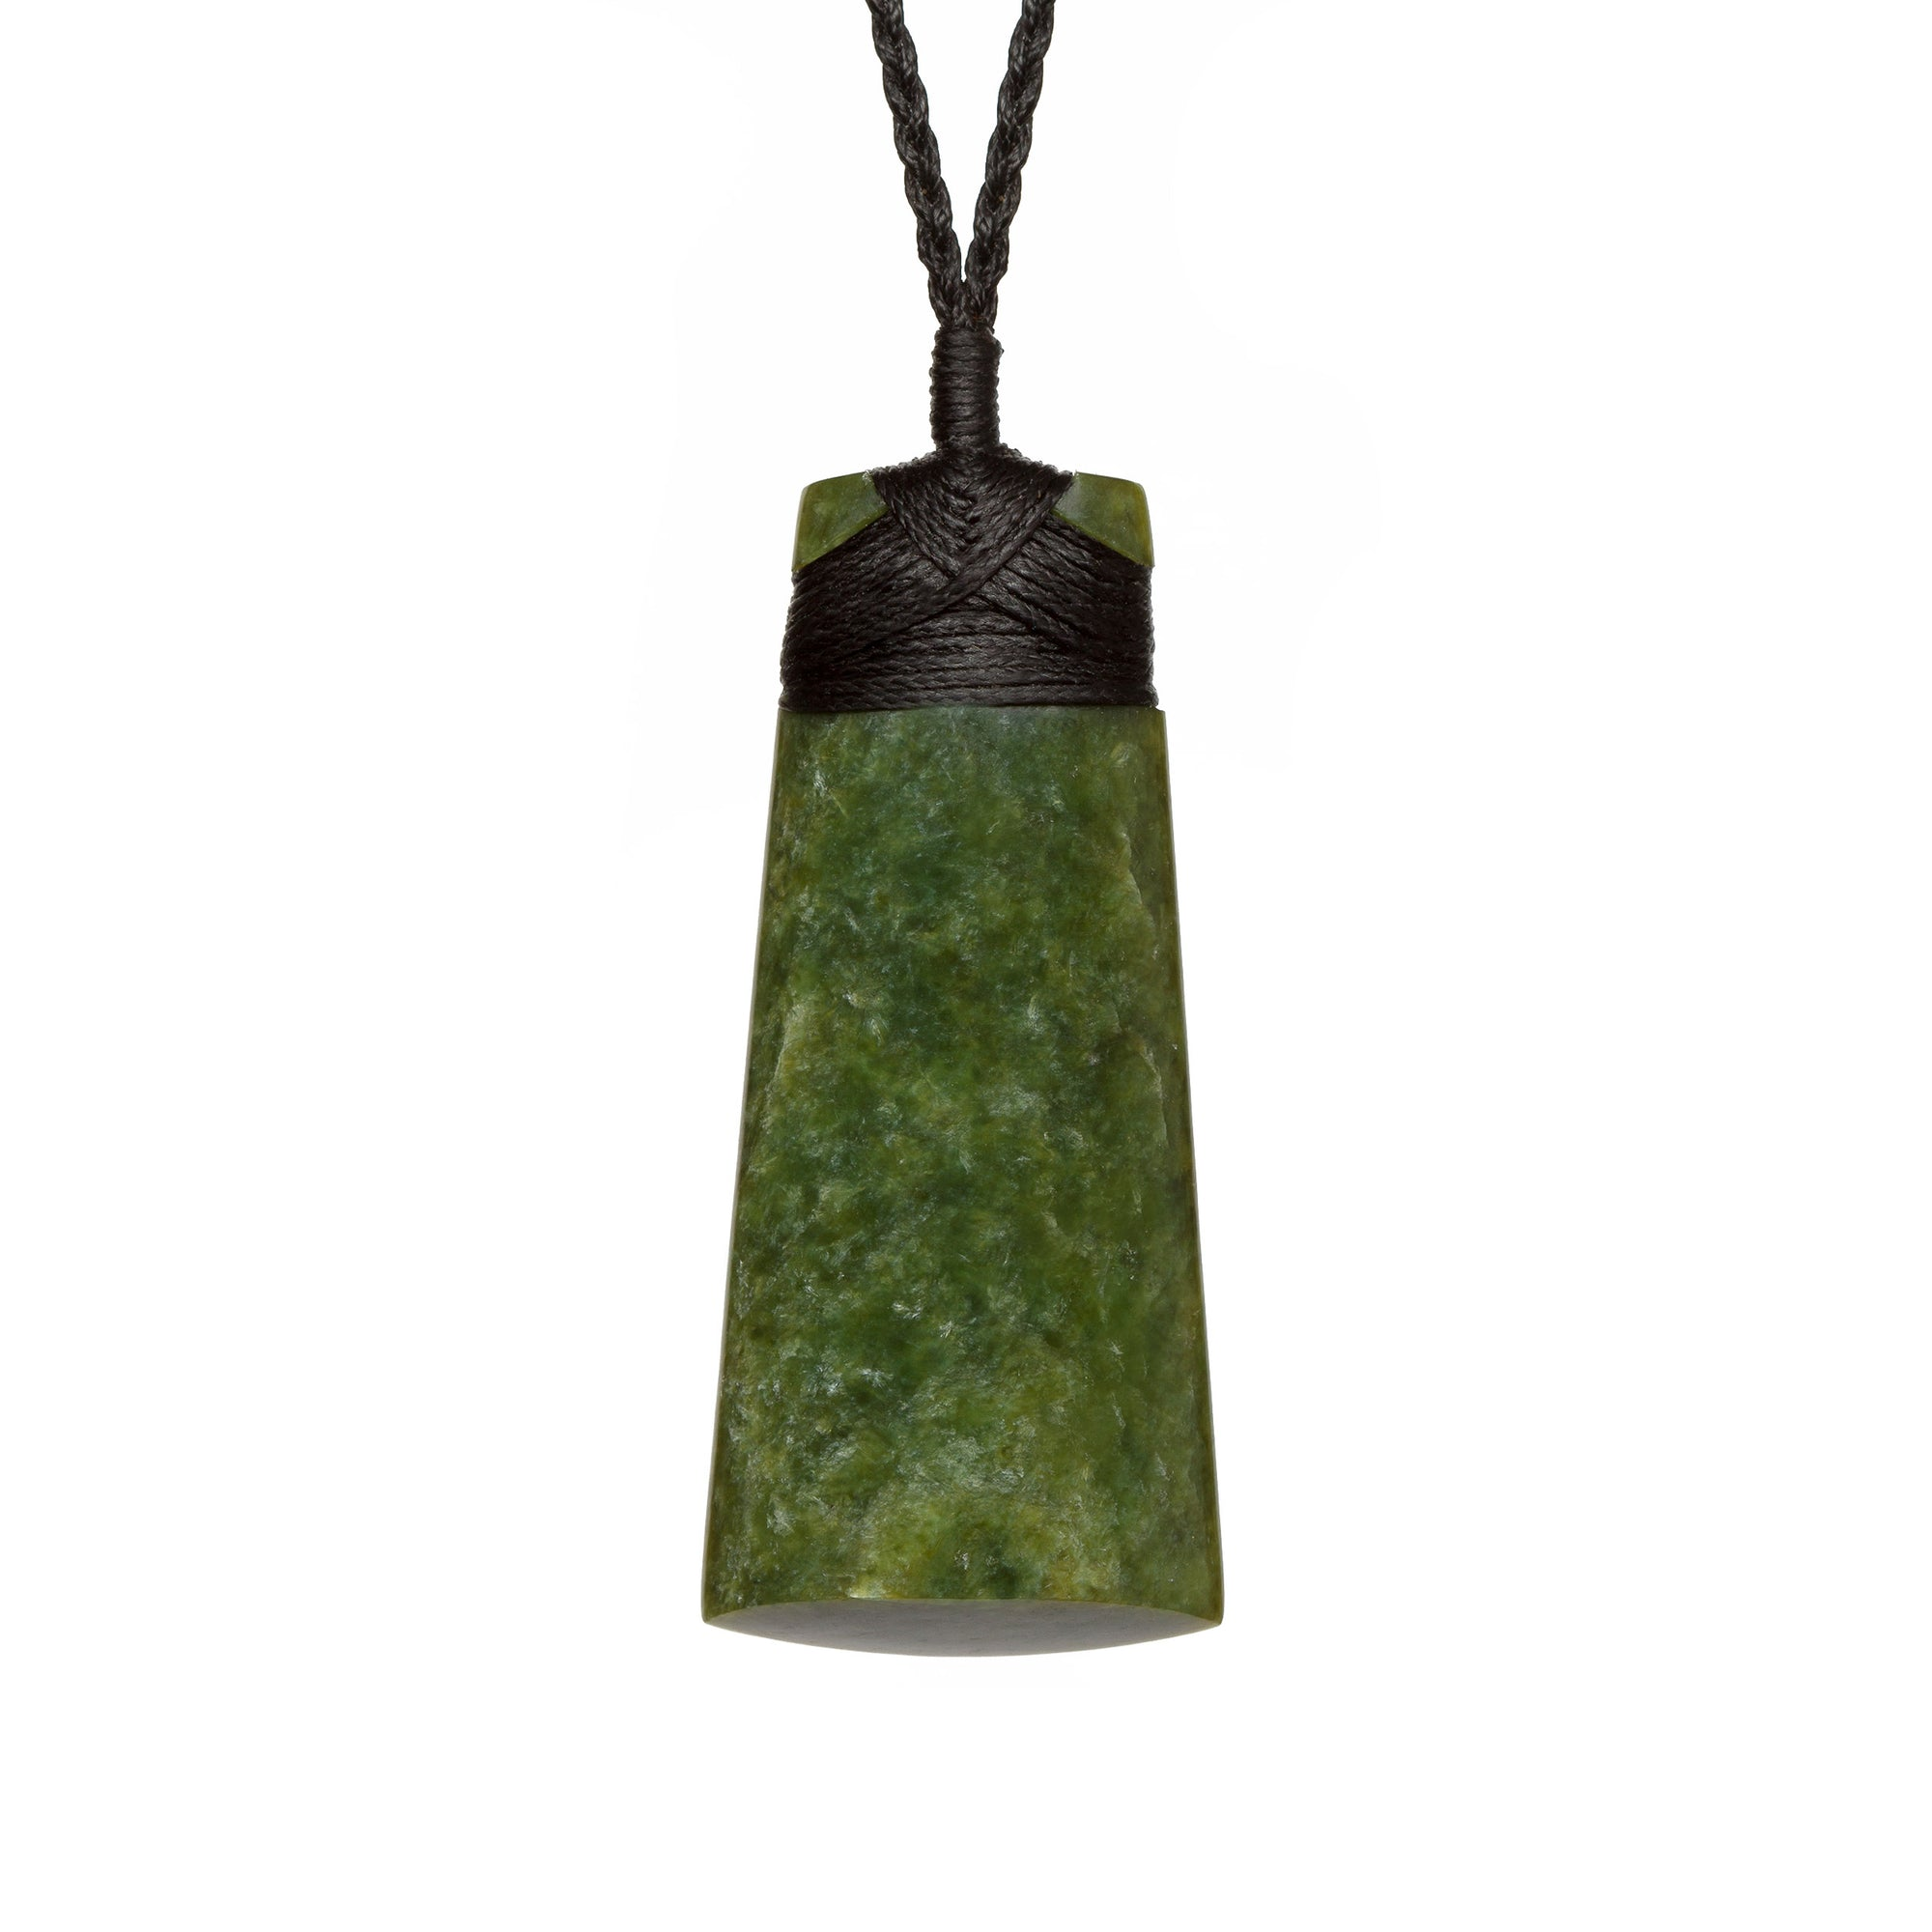 New Zealand Pounamu Polished Toki